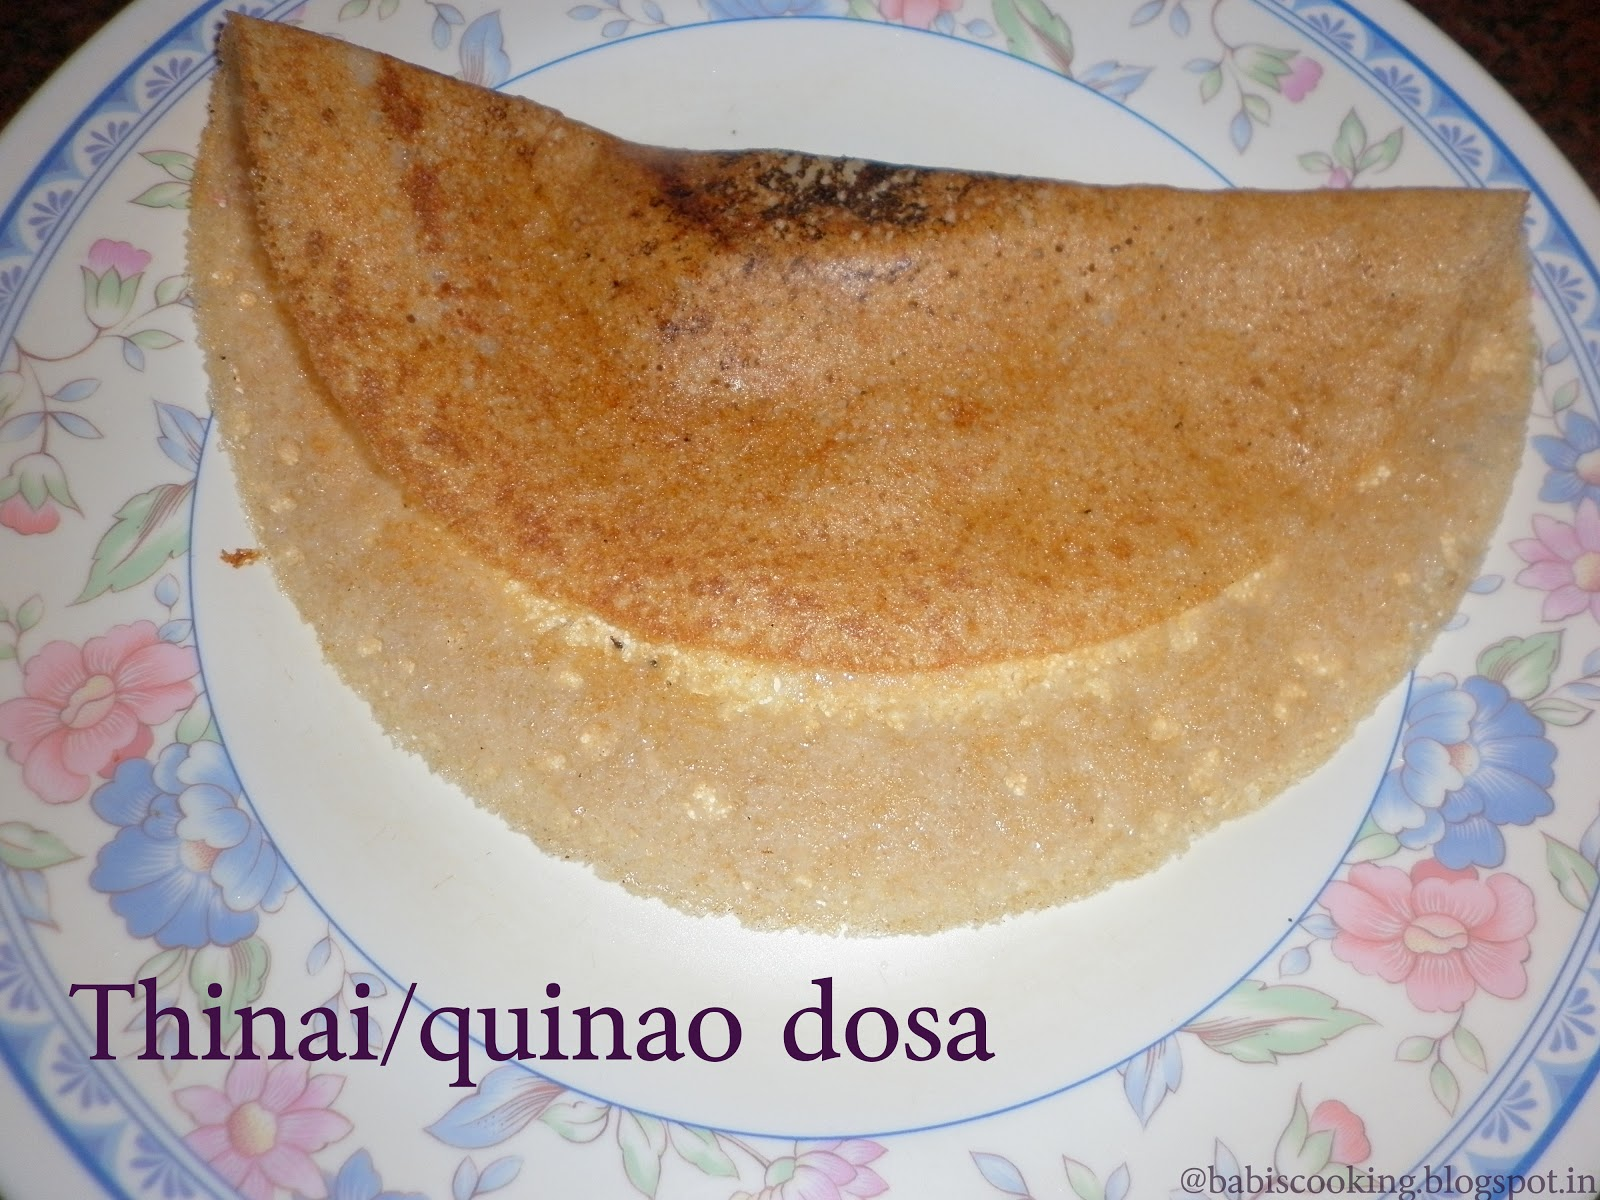 Thinai/quinao/fox millet dosa